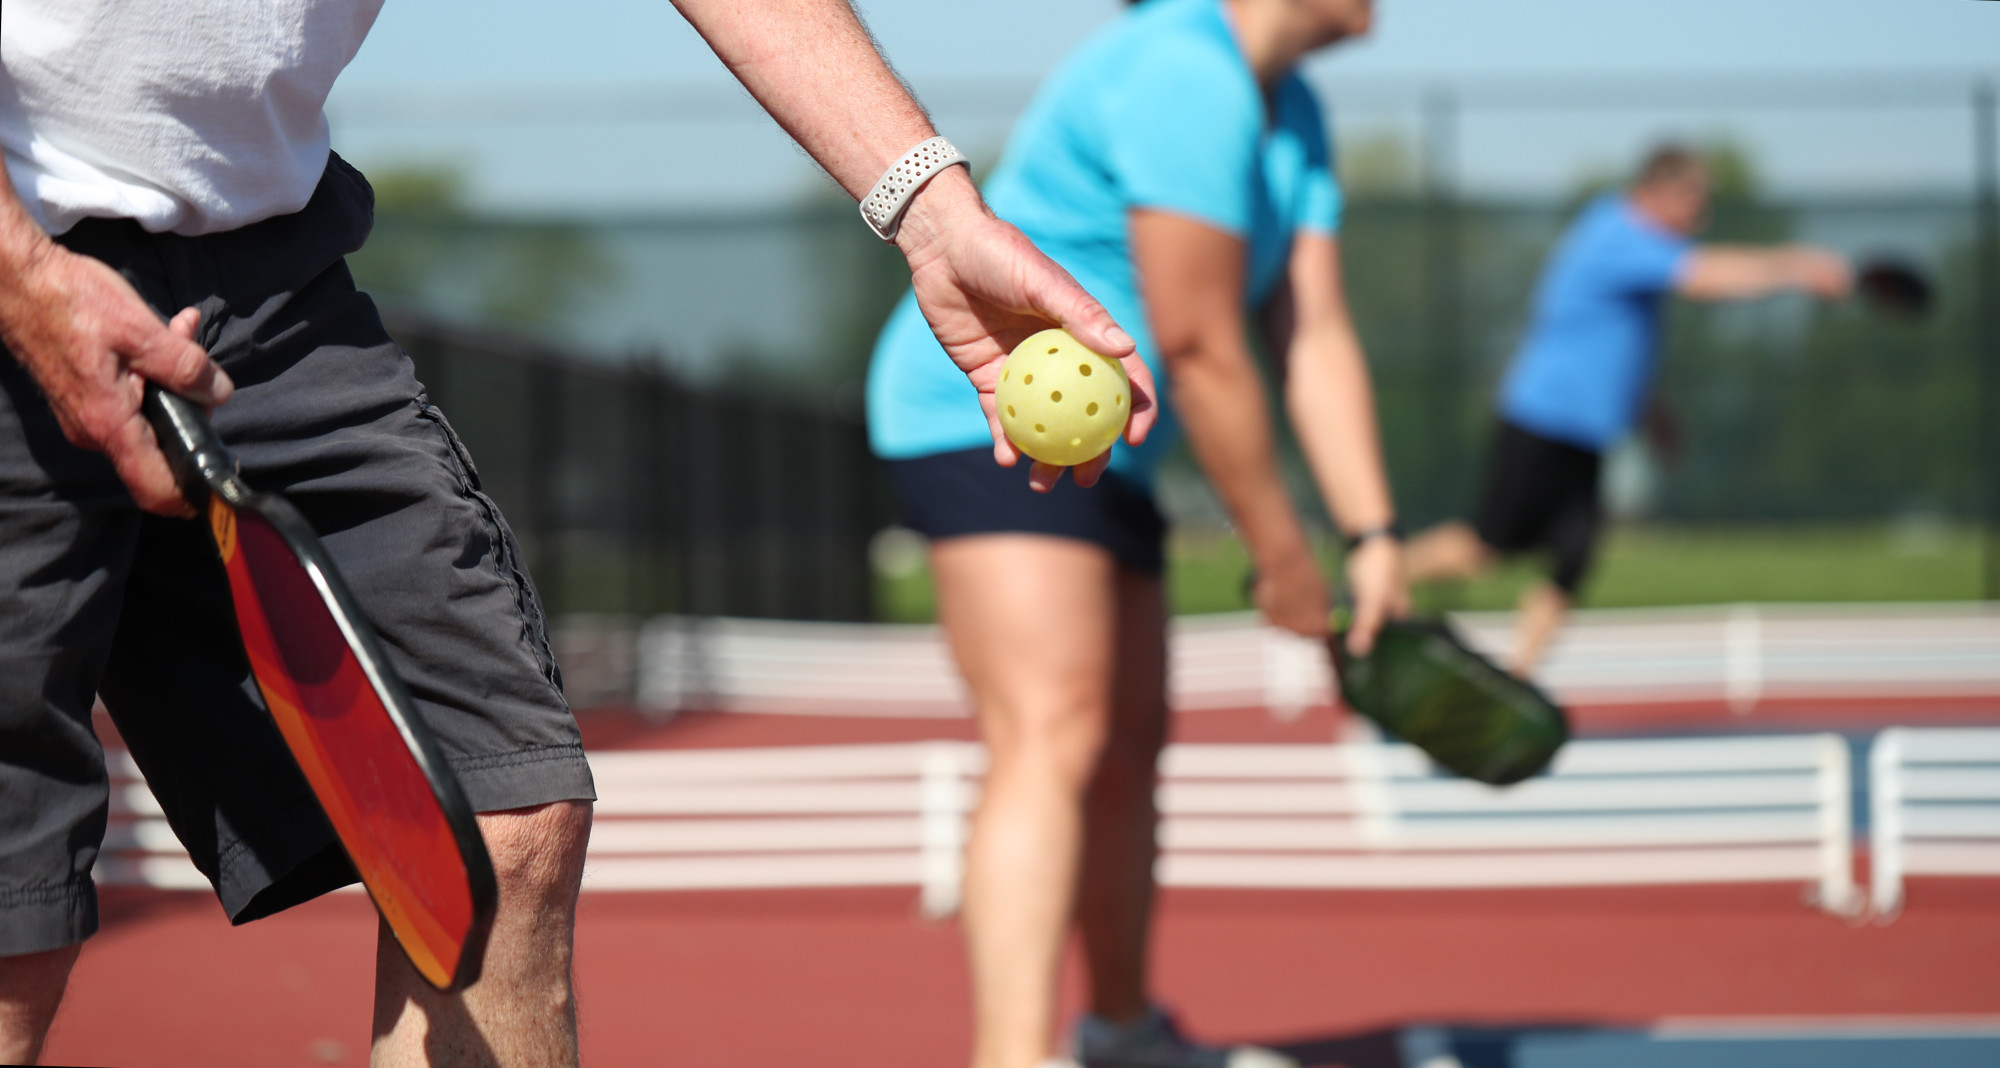 Want Your Pickleball Game To Be The Biggest Hit? Use The Pro Tips For The Best Serve!